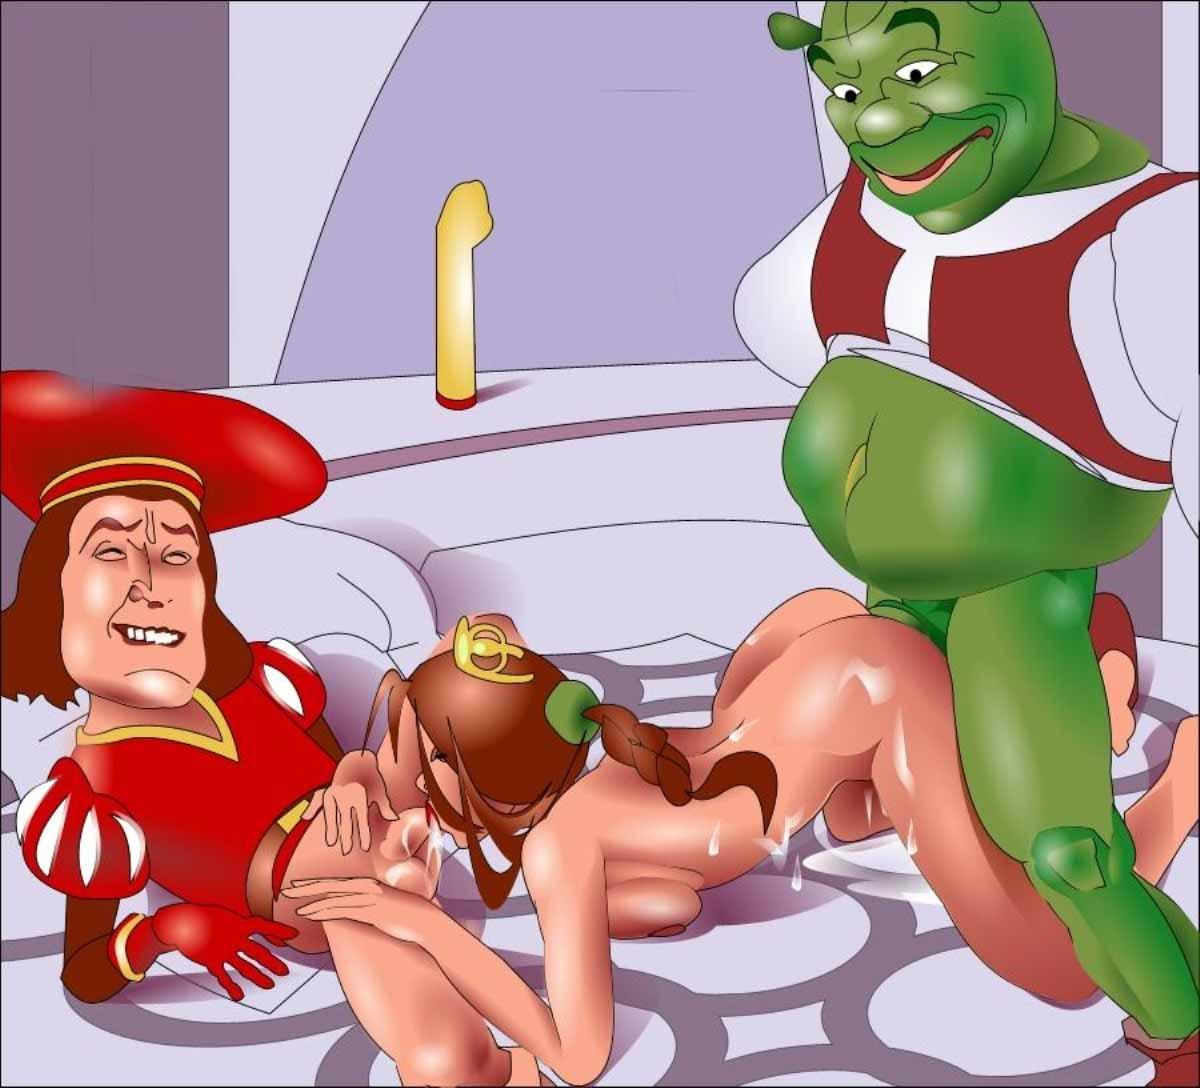 Shrek movie sex naked images